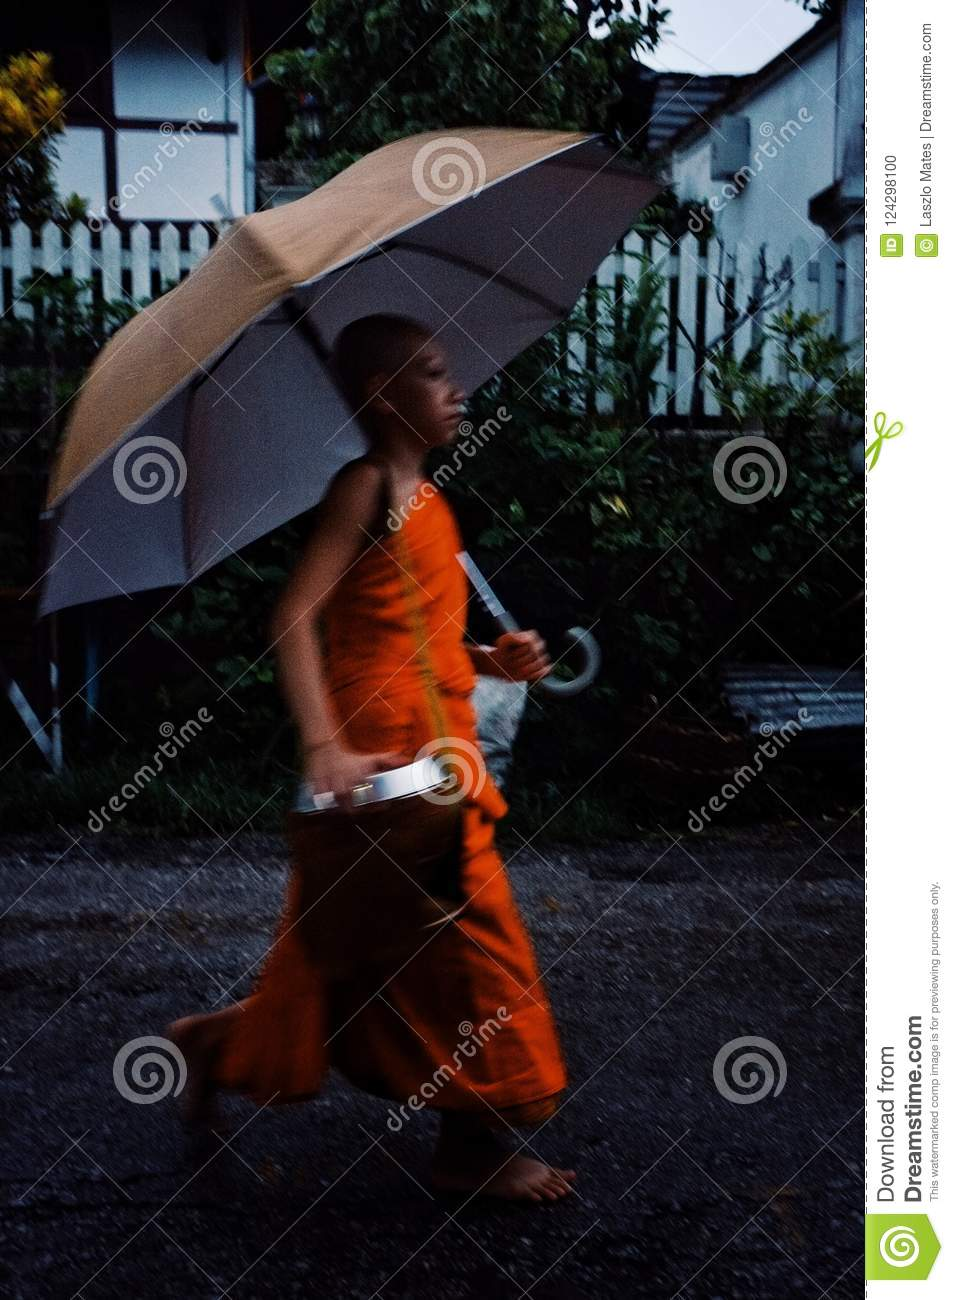 Monk during their early morning round around the town to collect their alms with umbrella